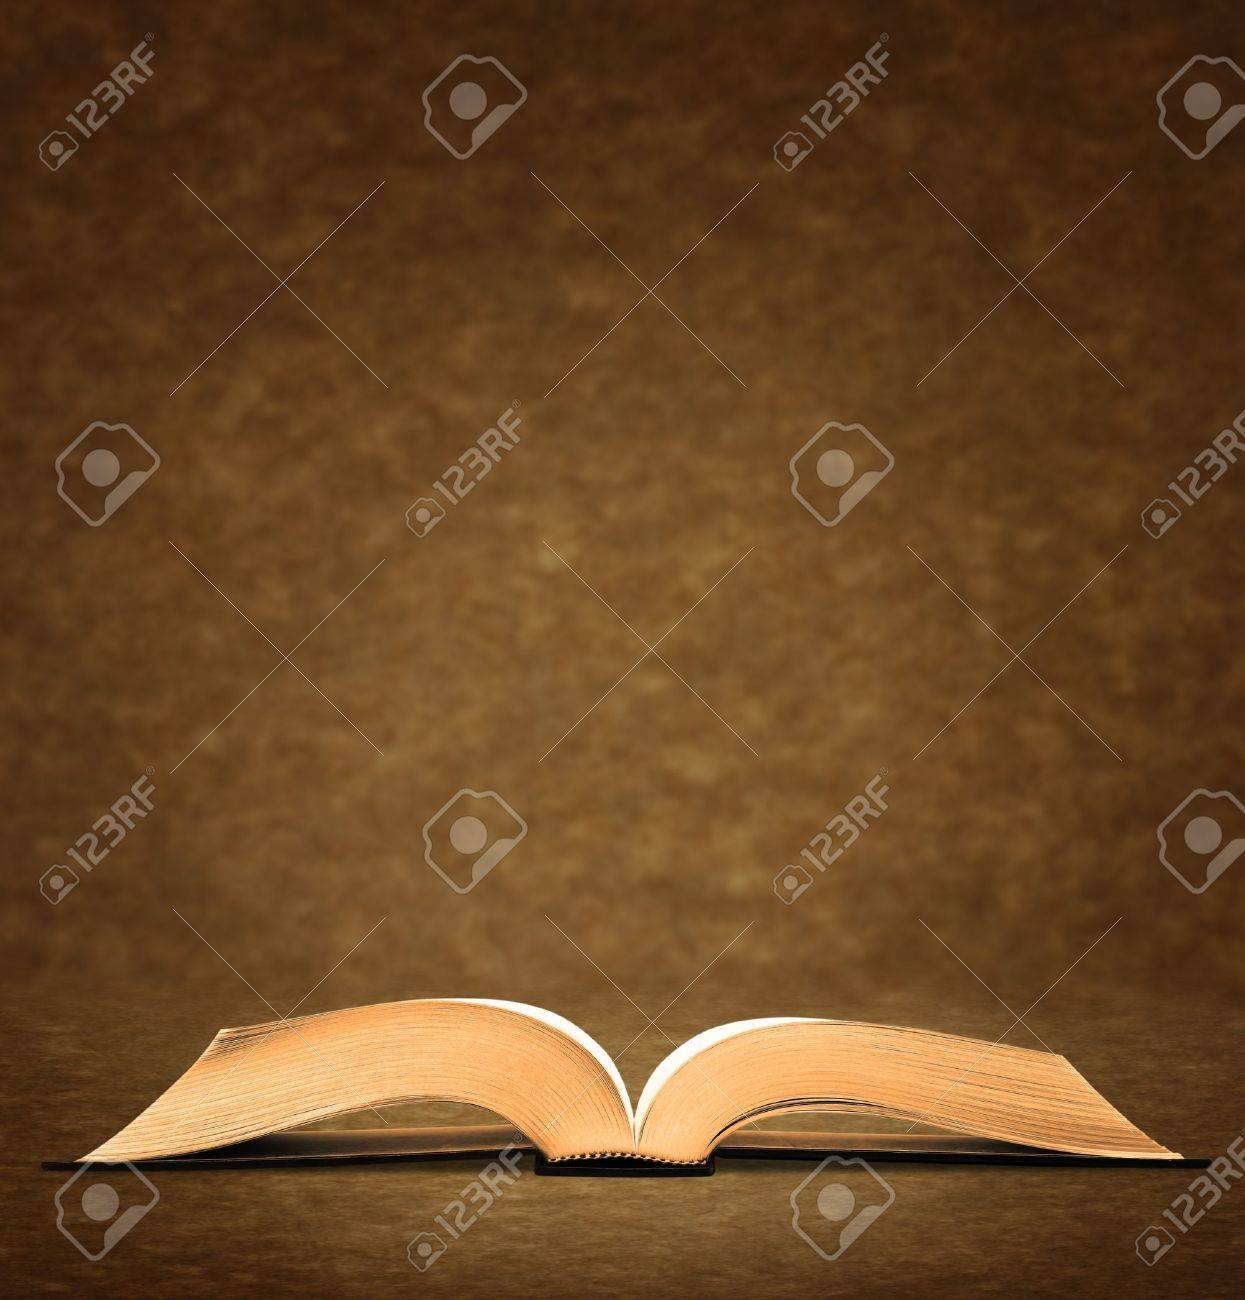 Open old book on brown background. Stock Photo - 10017125